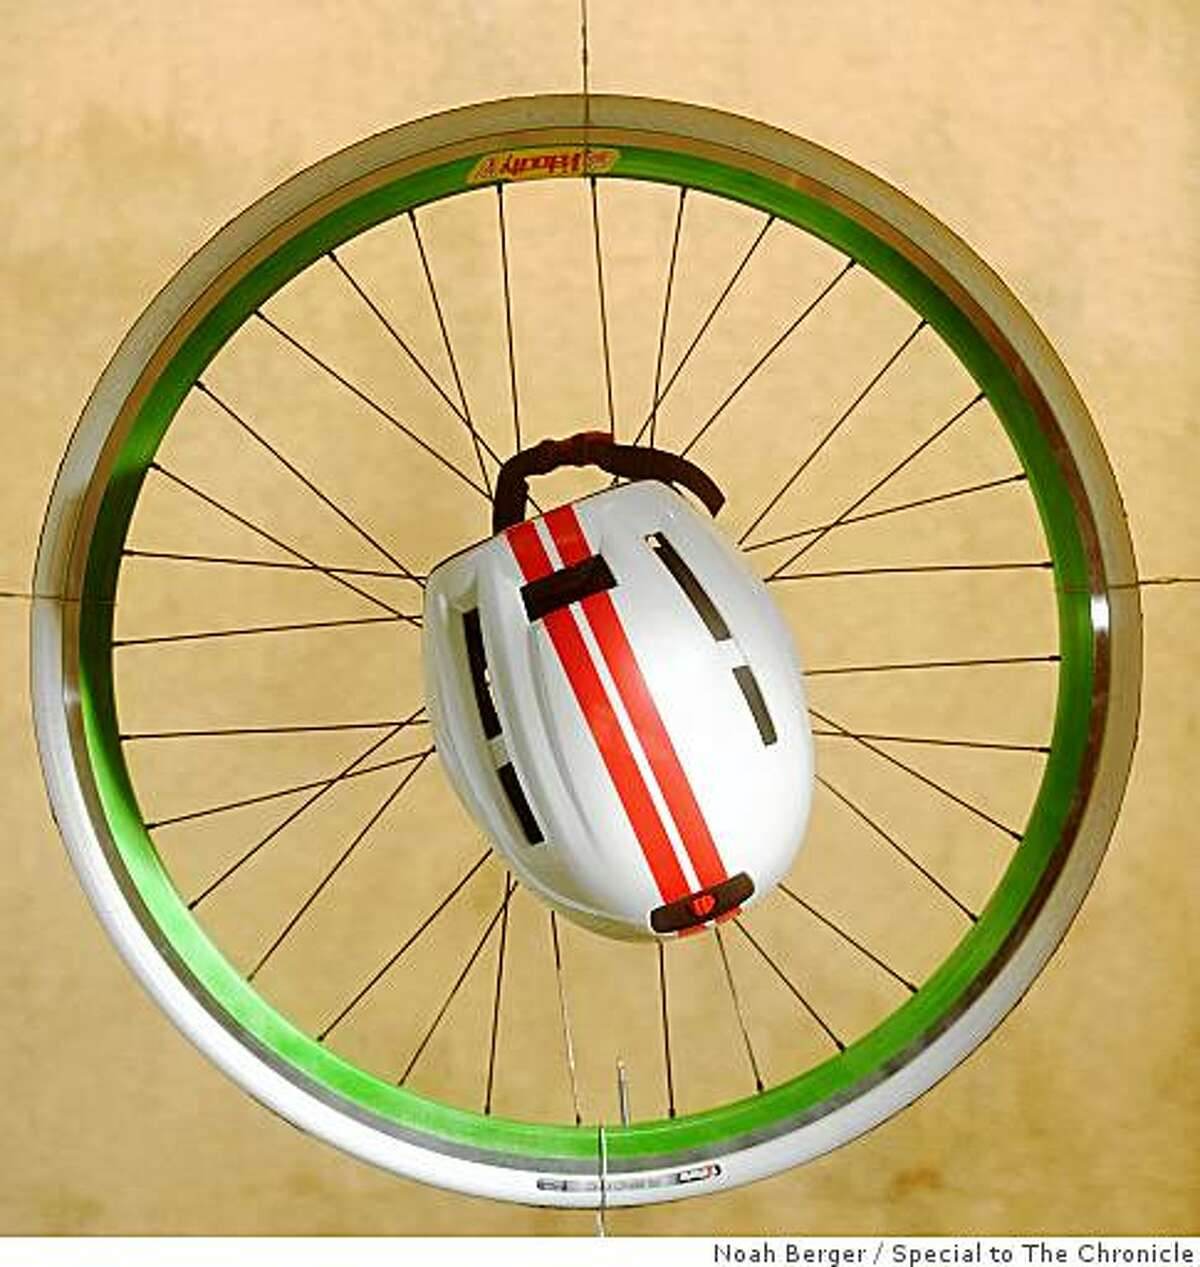 An Urbanize helmet from Lazer hangs at Mission Bicycle Company on Monday, July 6, 2009, in San Francisco.